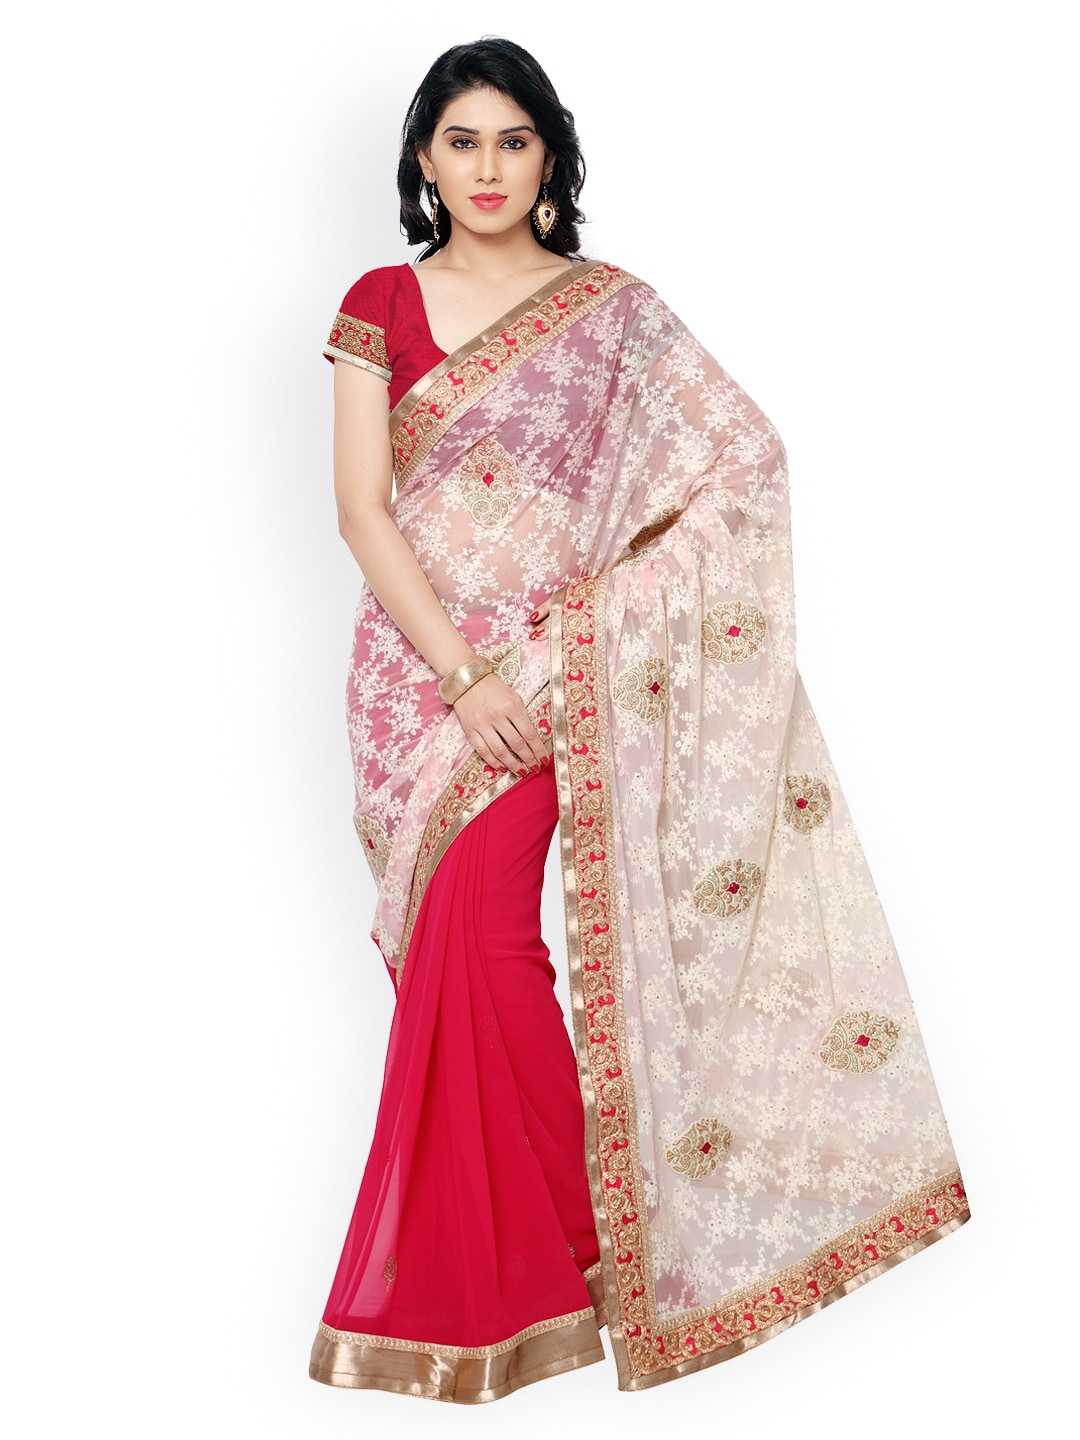 subhash sarees Cream-Coloured & Pink Embroidered Net Embellished Saree